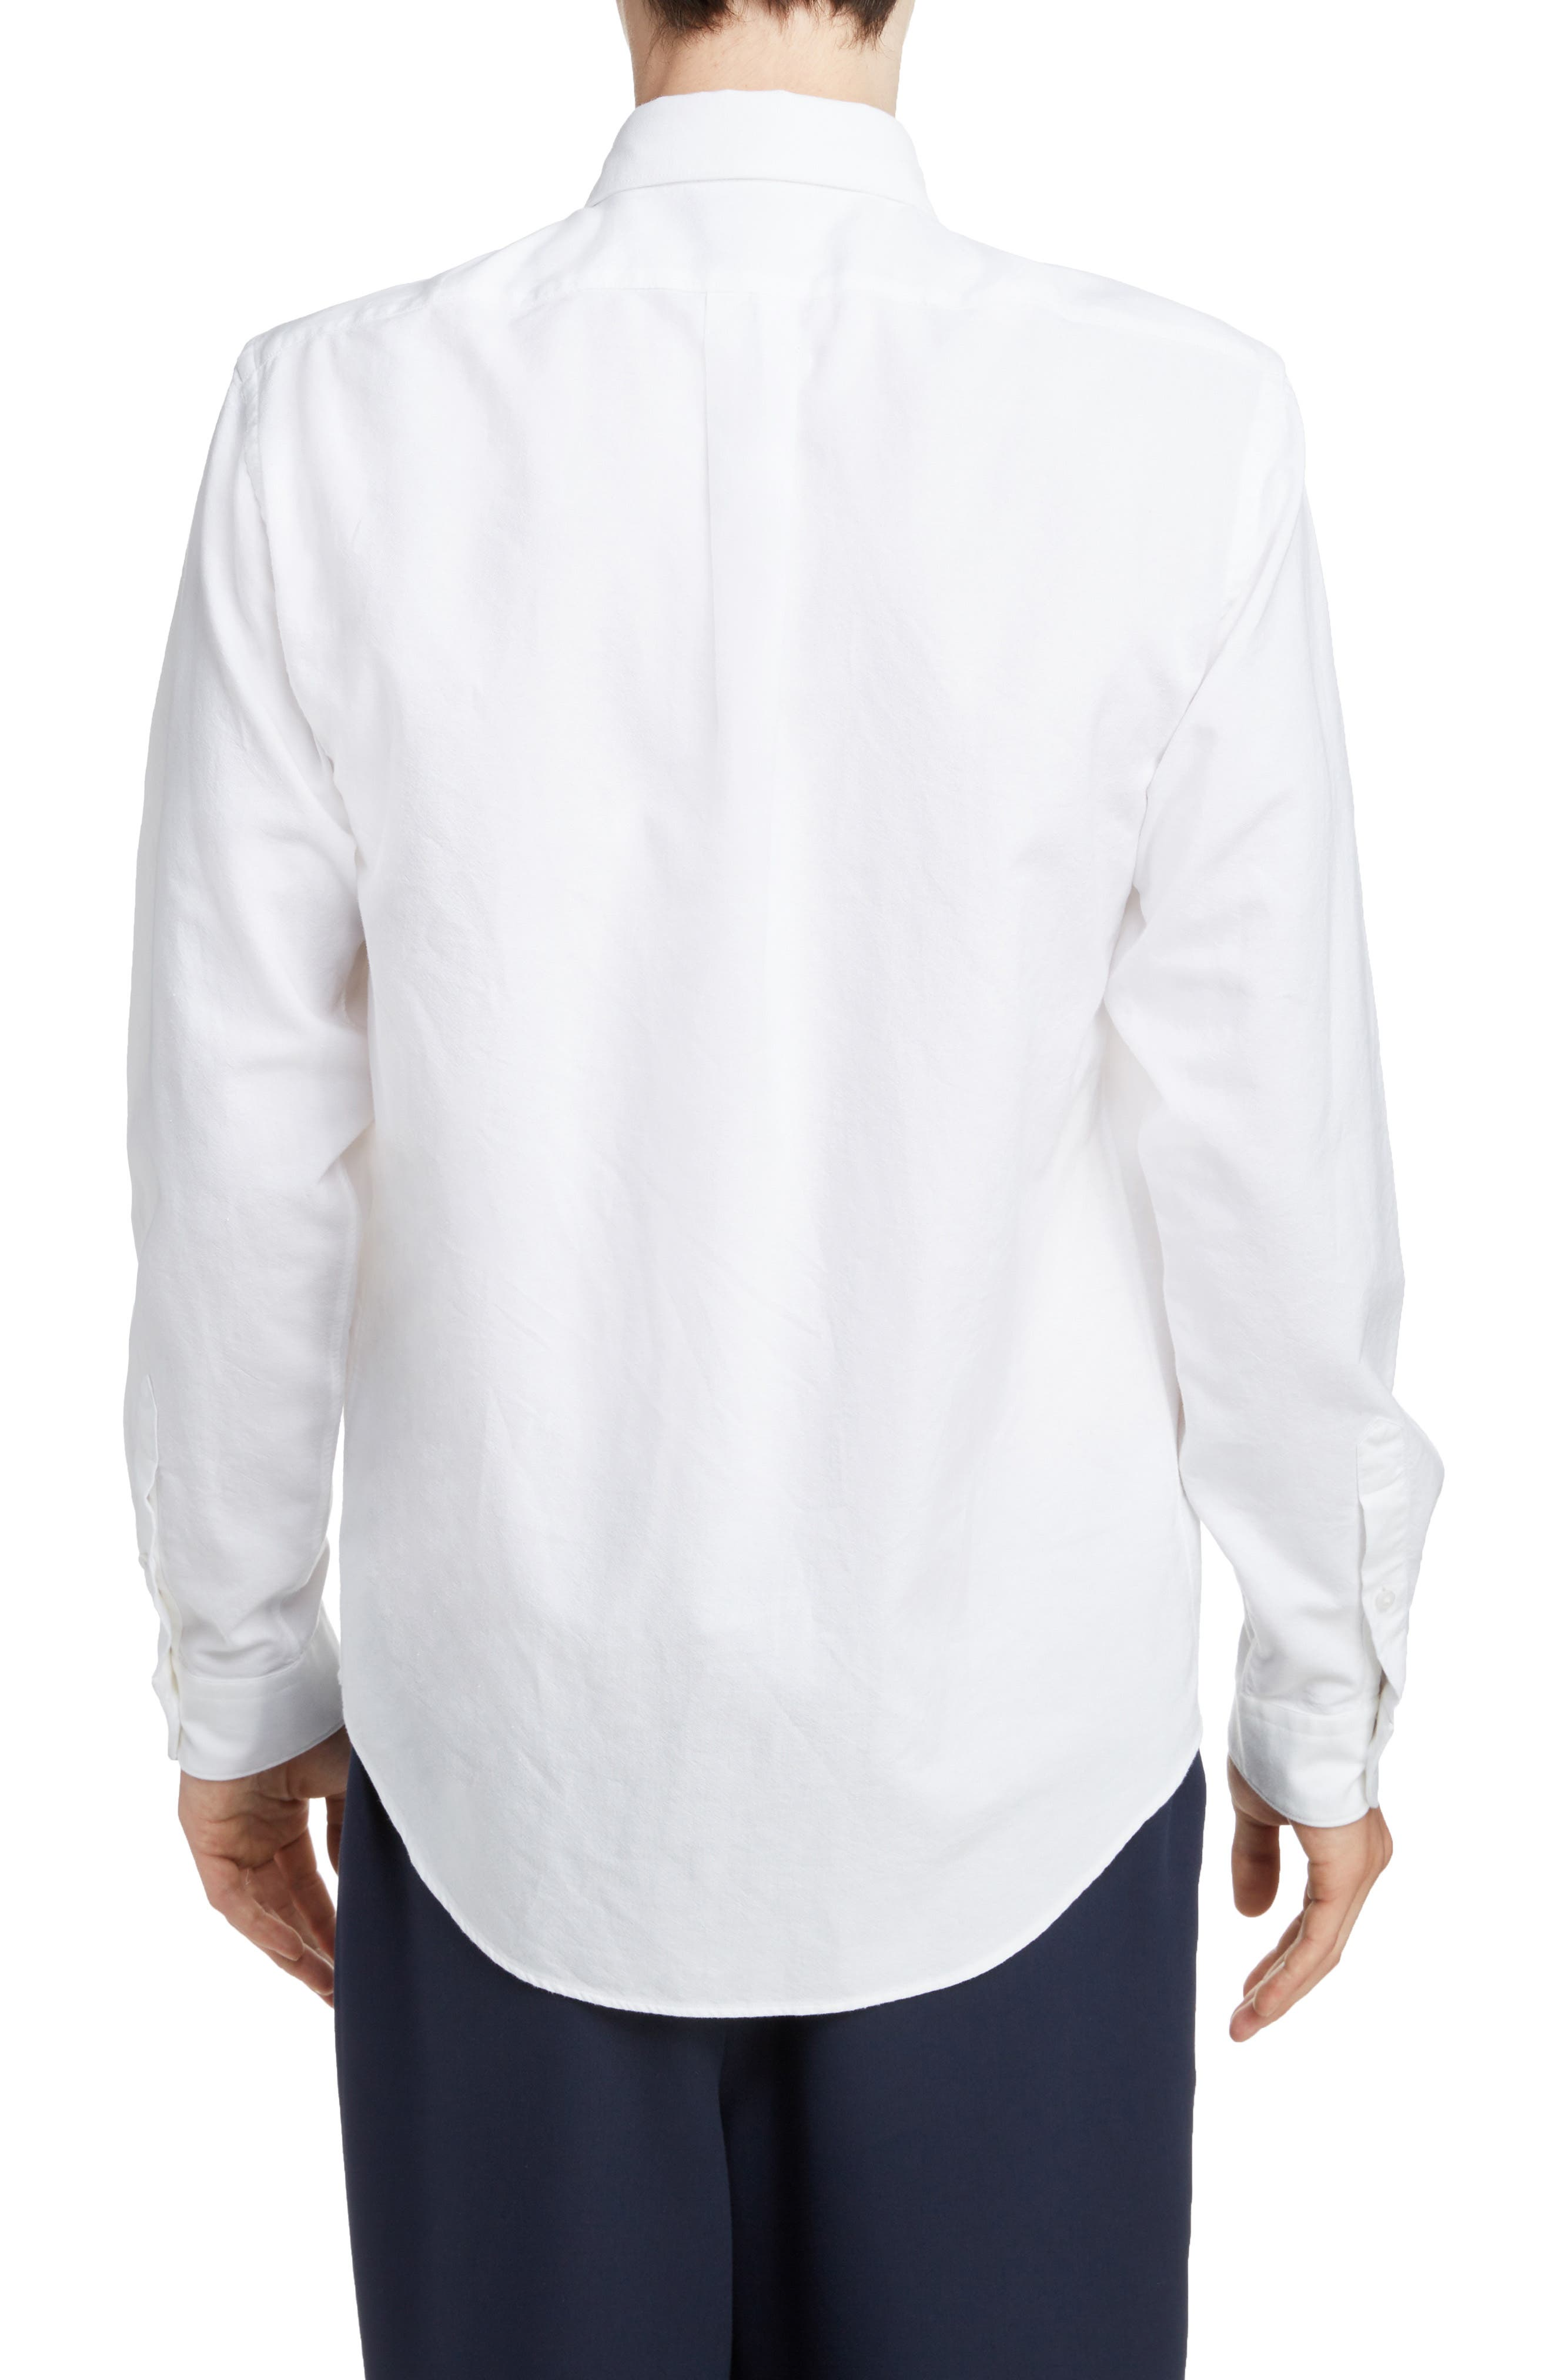 KENZO,                             Jumping Tiger Crest Woven Shirt,                             Alternate thumbnail 3, color,                             WHITE